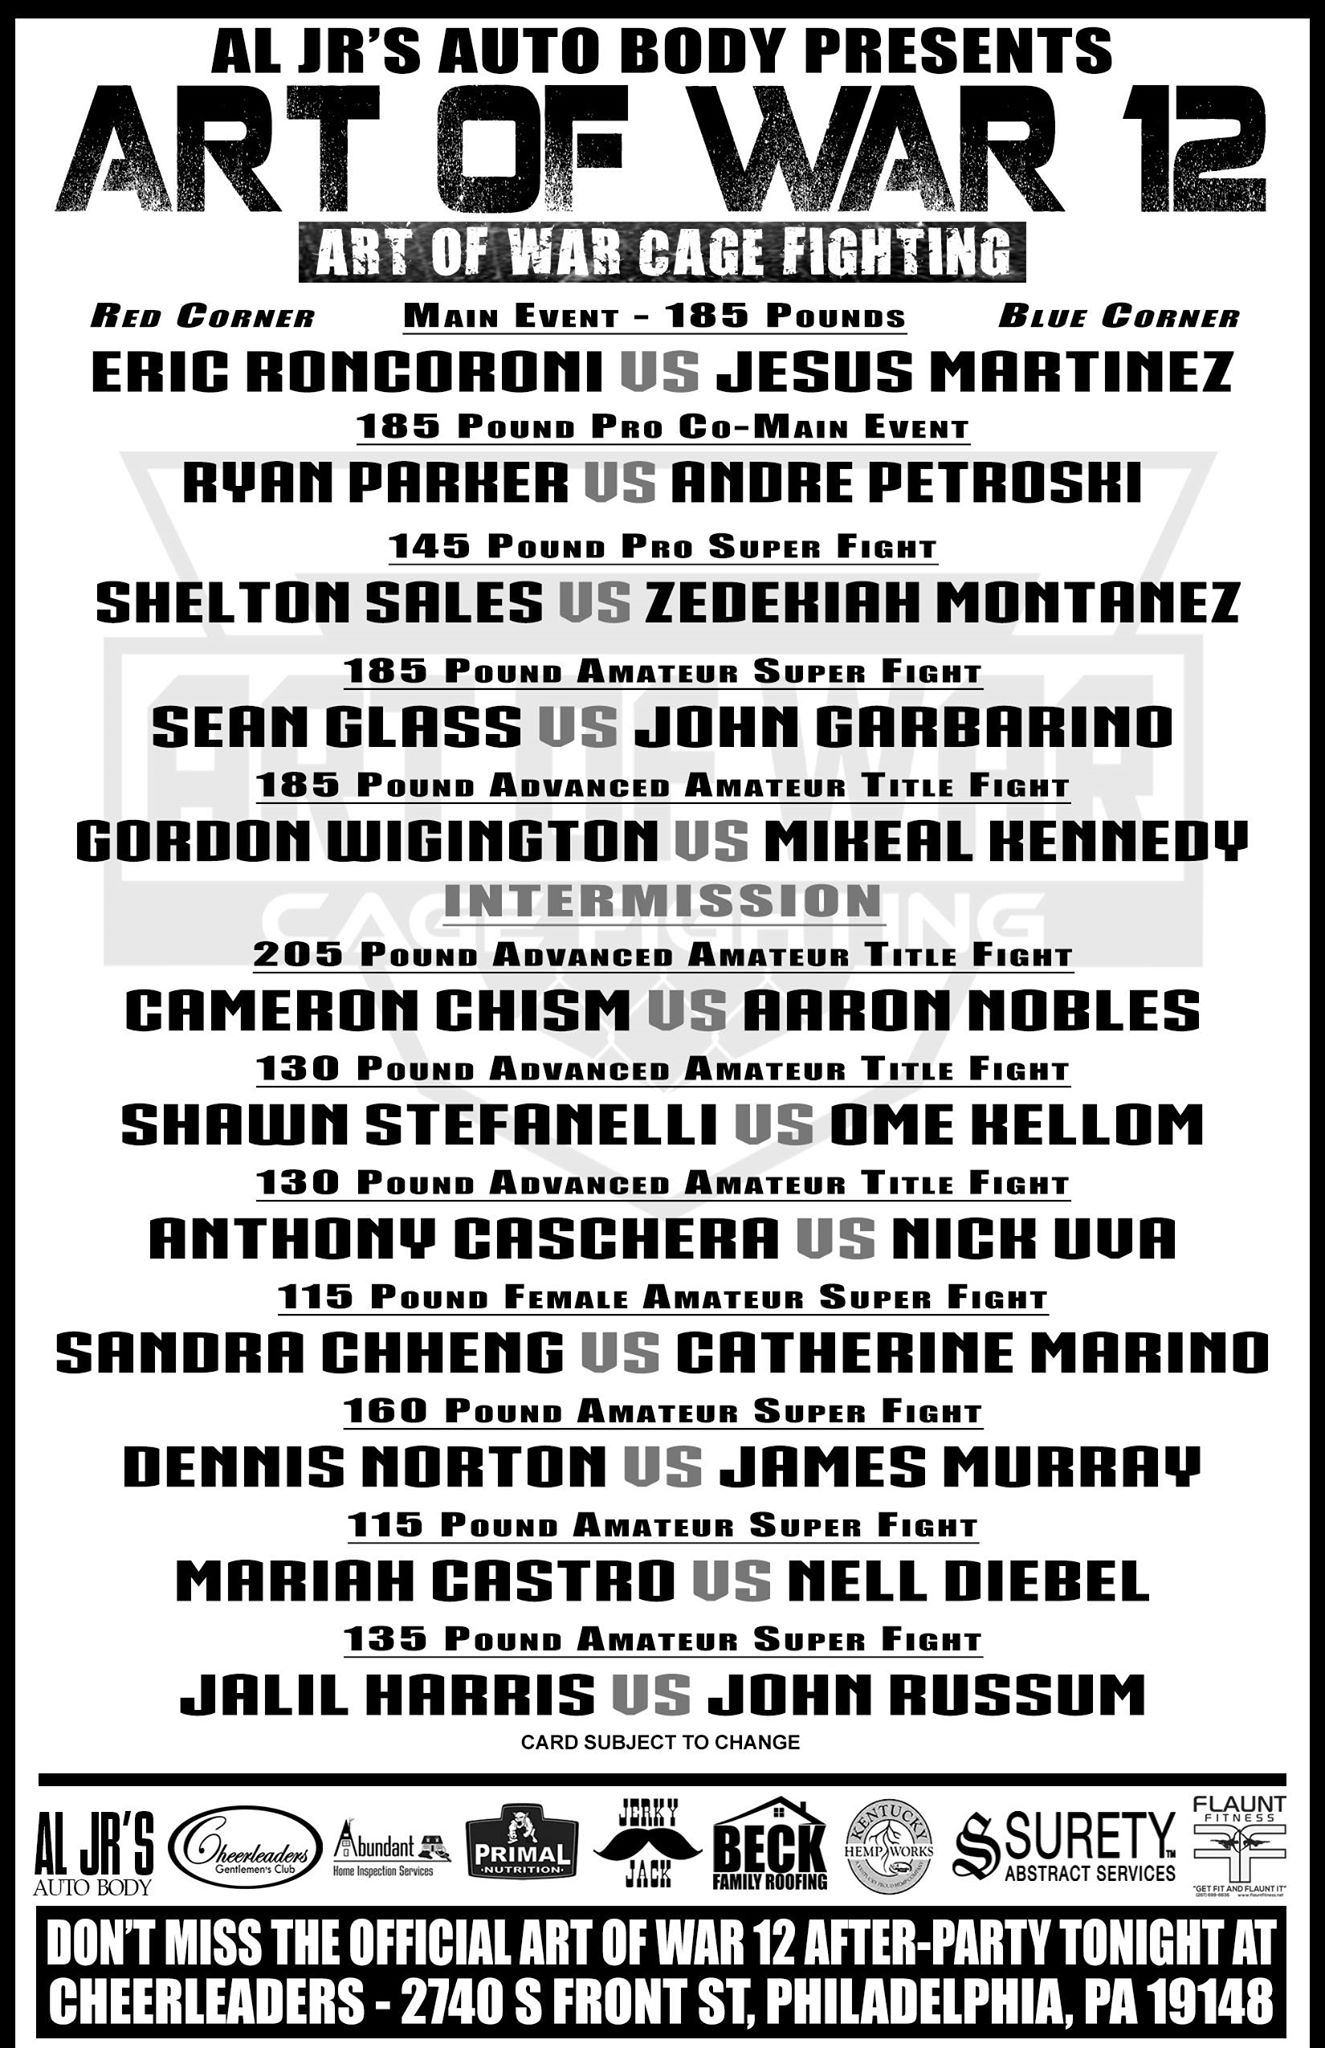 AOW 12, Art of War Cage Fighting